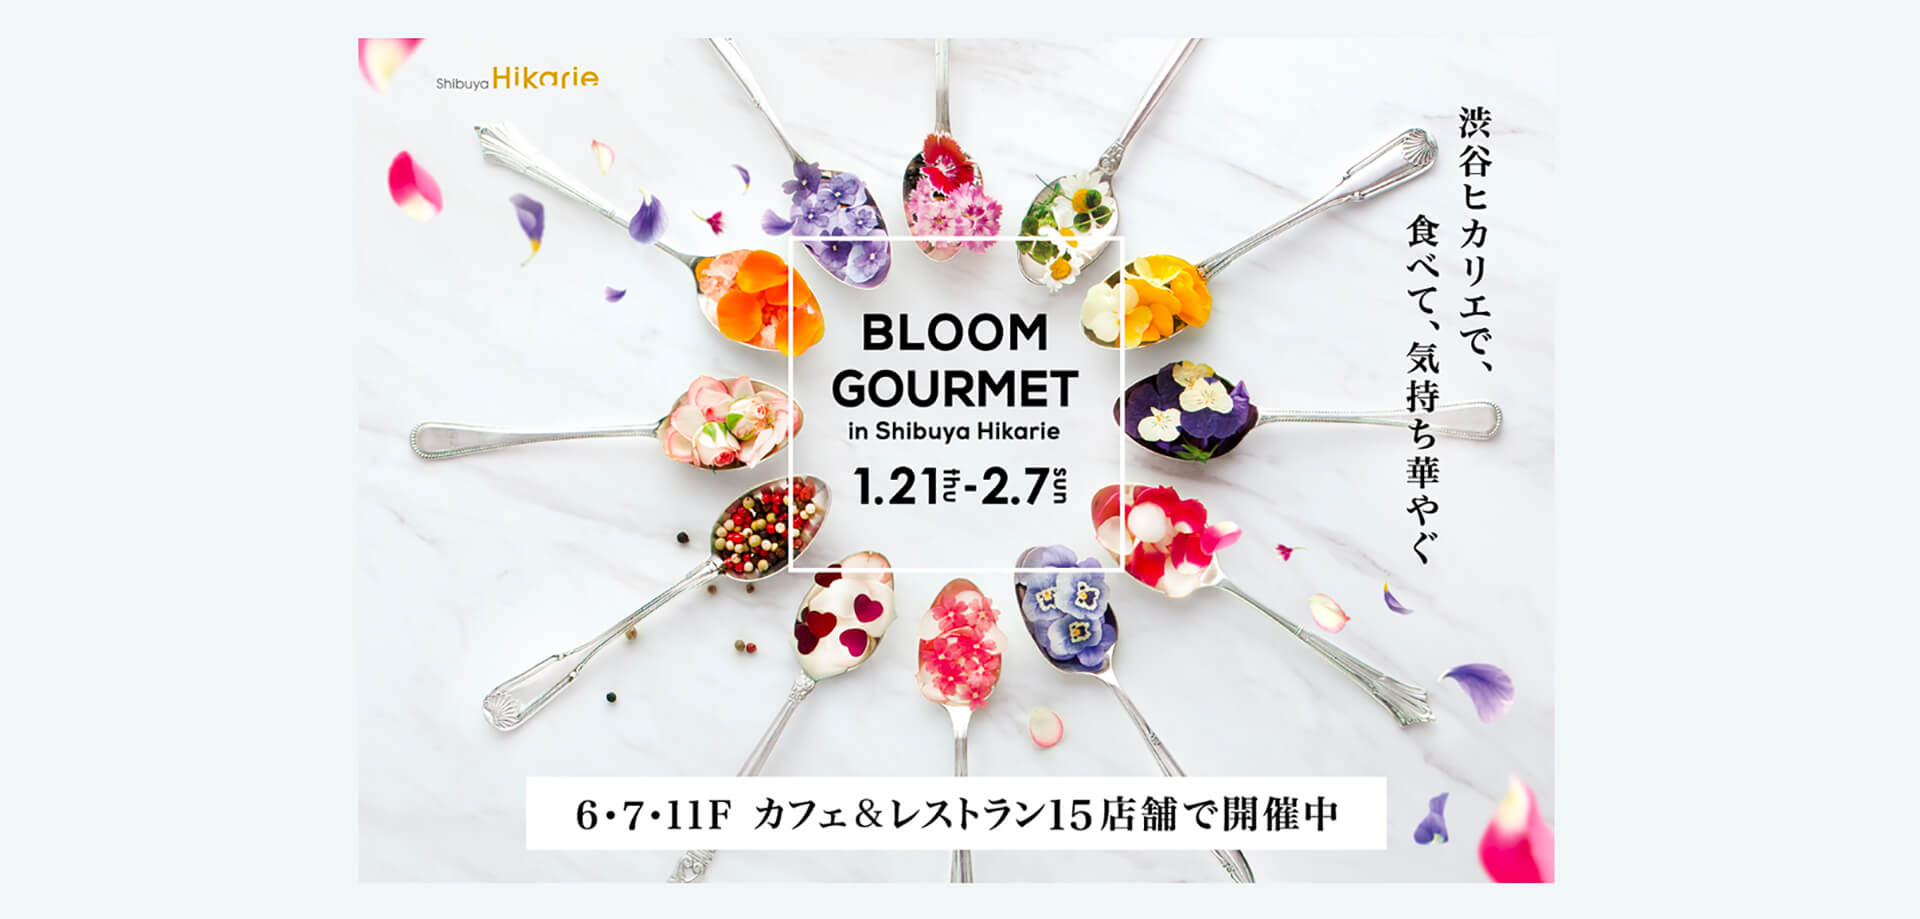 期間限定の飲食フェア BLOOM GOURMET in Shibuya Hikarie